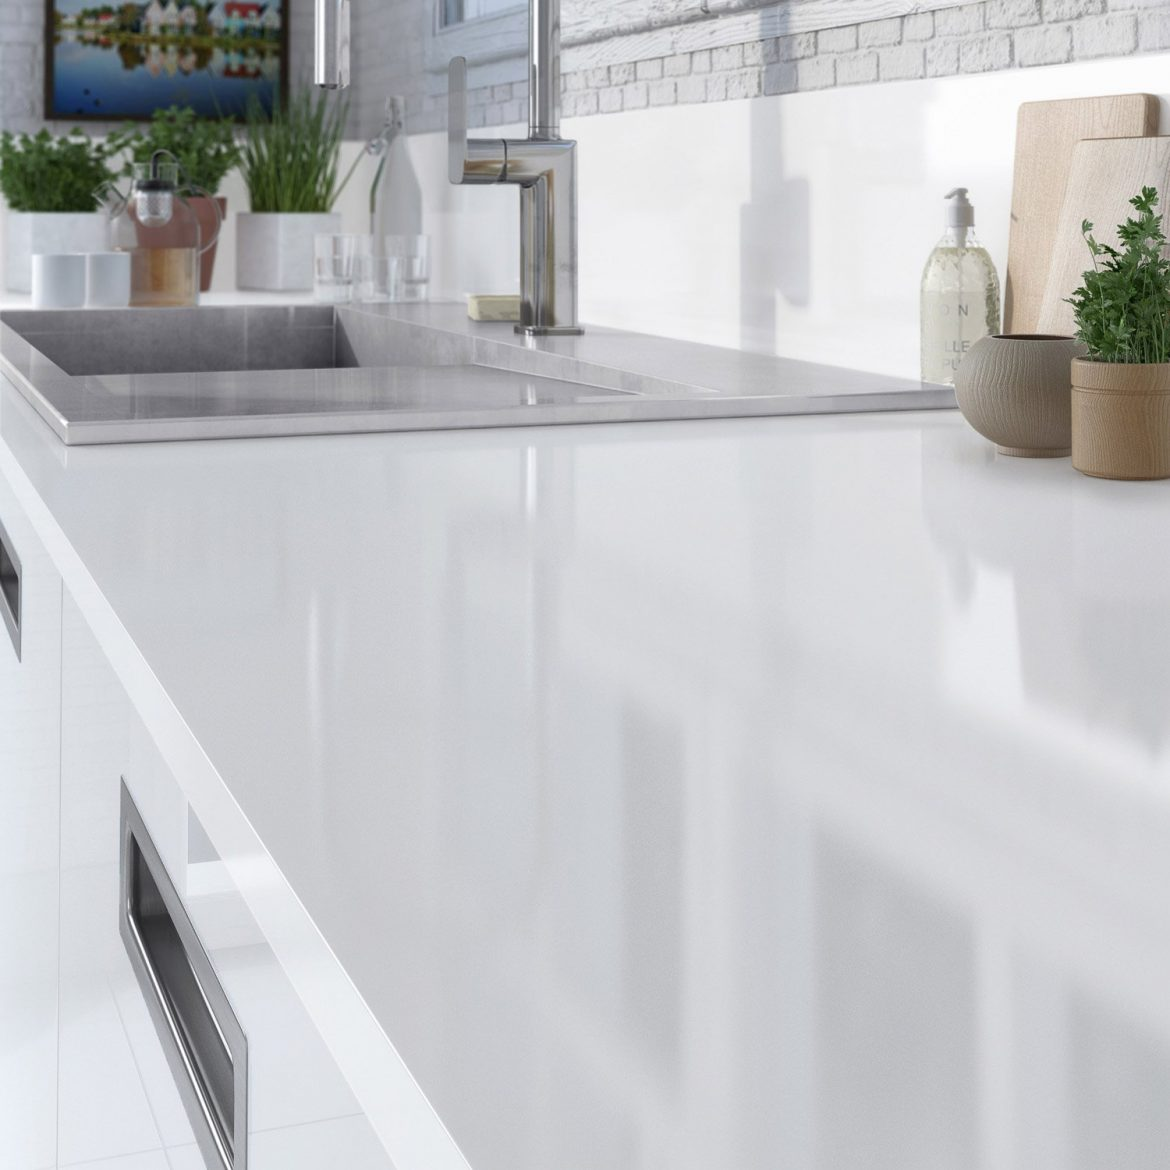 Popular Granite Countertop Configurations Orlando: Orlando Quartz Countertops Fabrication & Installation